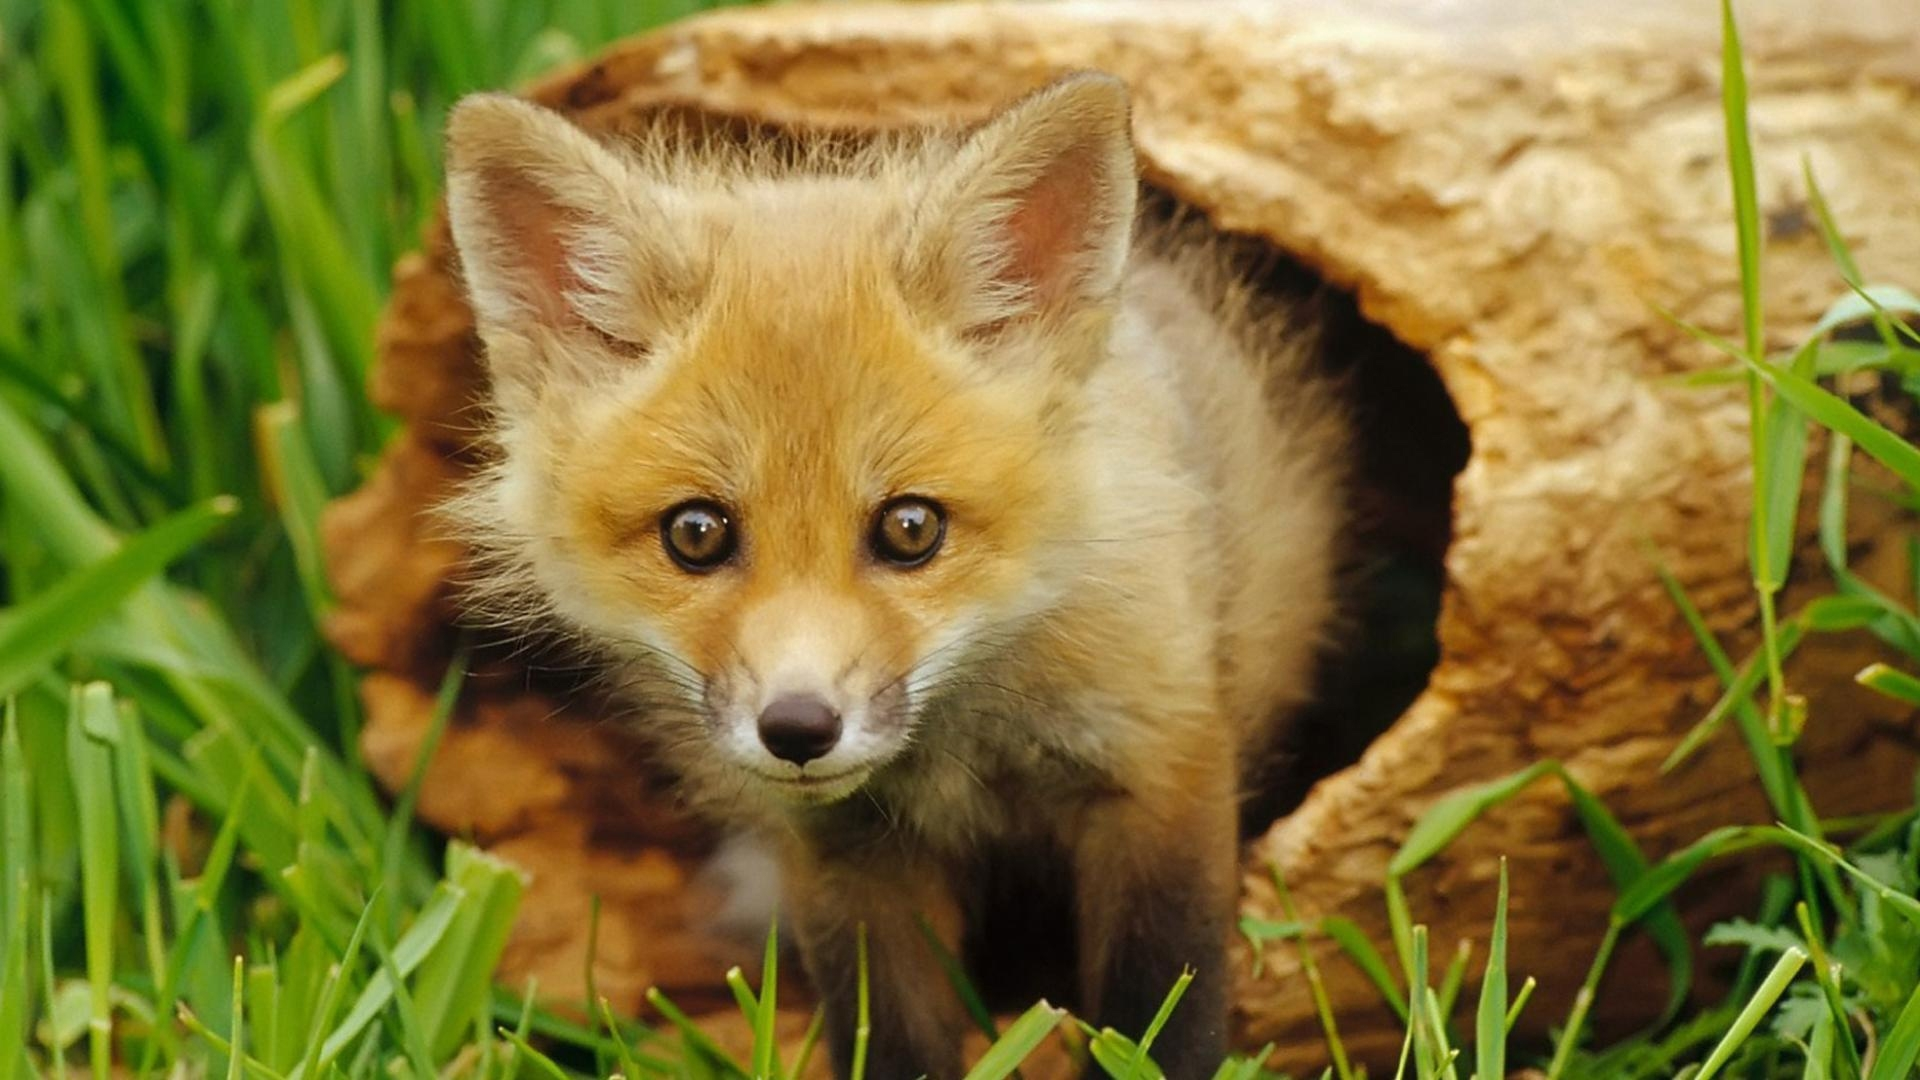 40424 download wallpaper Animals, Fox screensavers and pictures for free